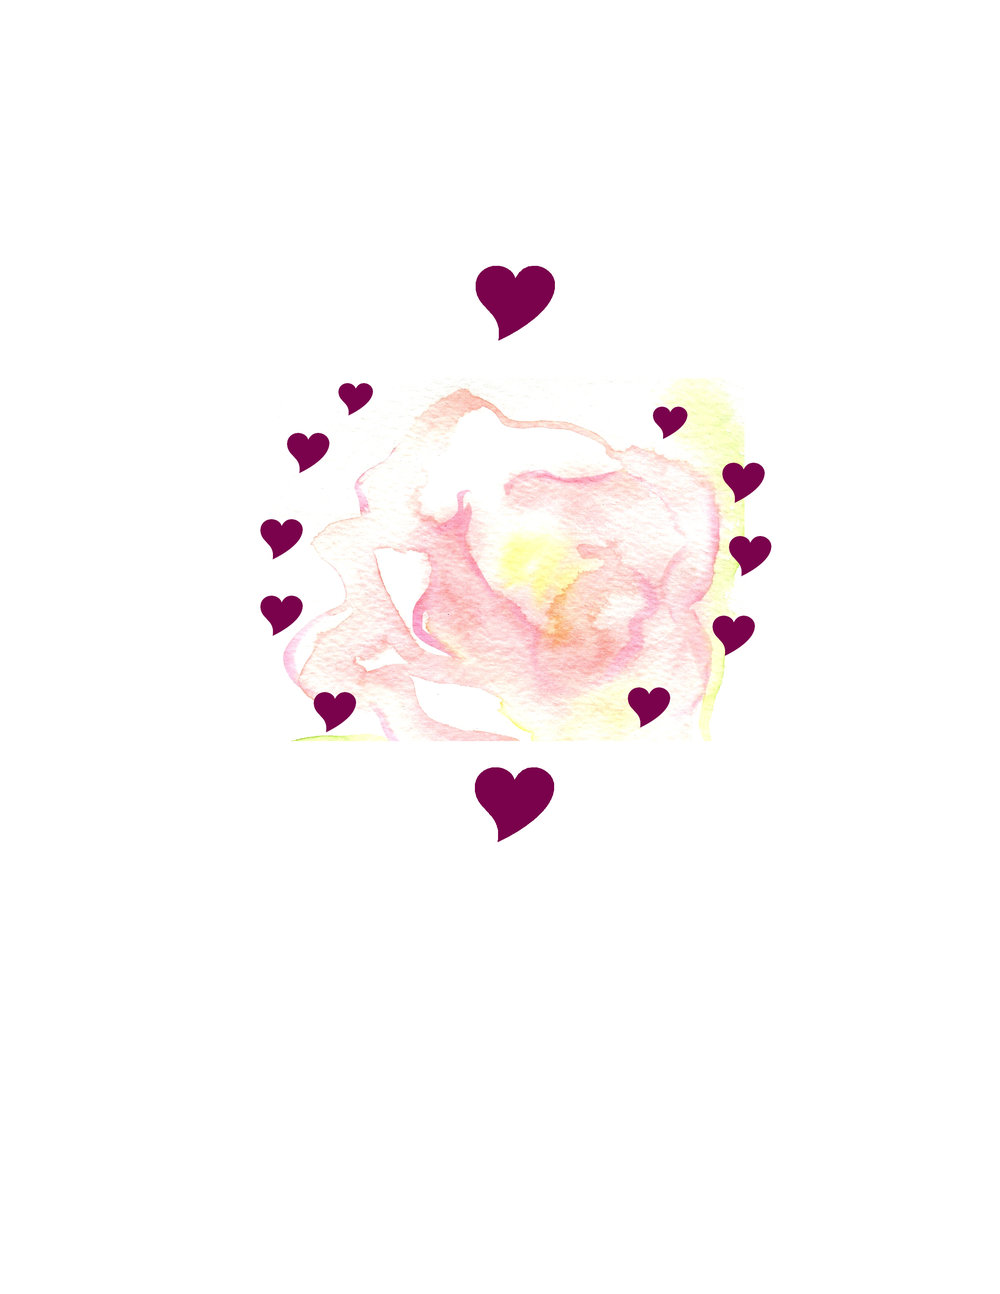 10 Essential Qaulities, rose with   hearts.JPG